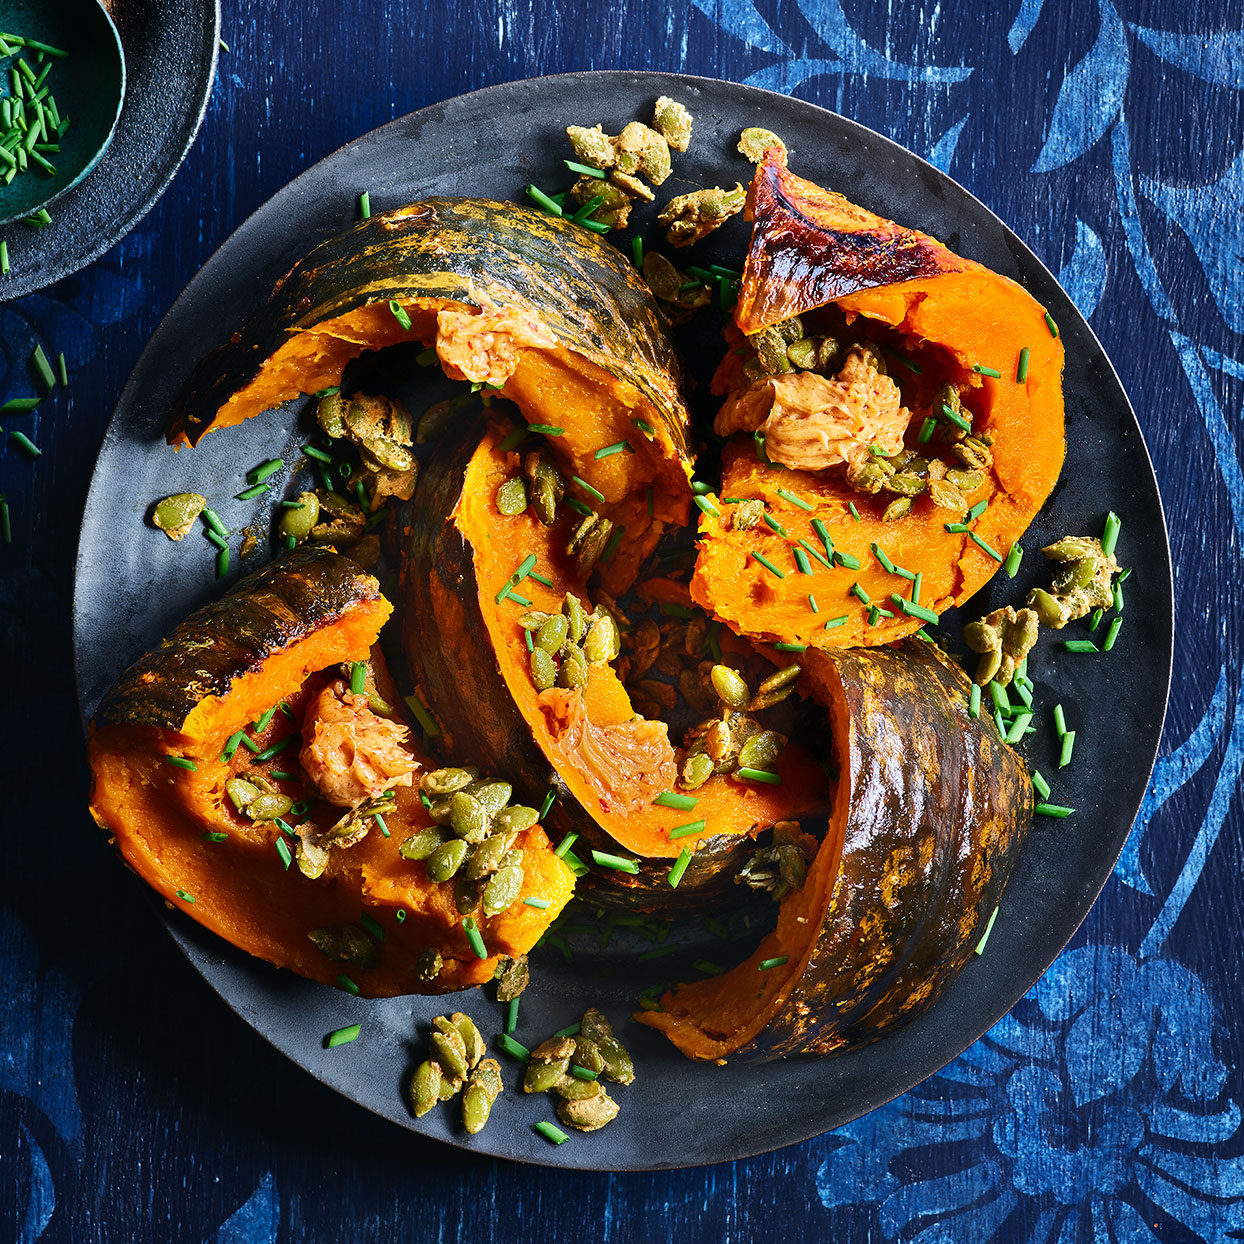 Ever wondered how to cook kabocha squash without ruining your knife? Roasting it whole softens its armor and creates nutty, complex flavor inside. Topped with a savory butter sauce and sweet pumpkin seeds, this Thanksgiving vegetable recipe creates a superstar.